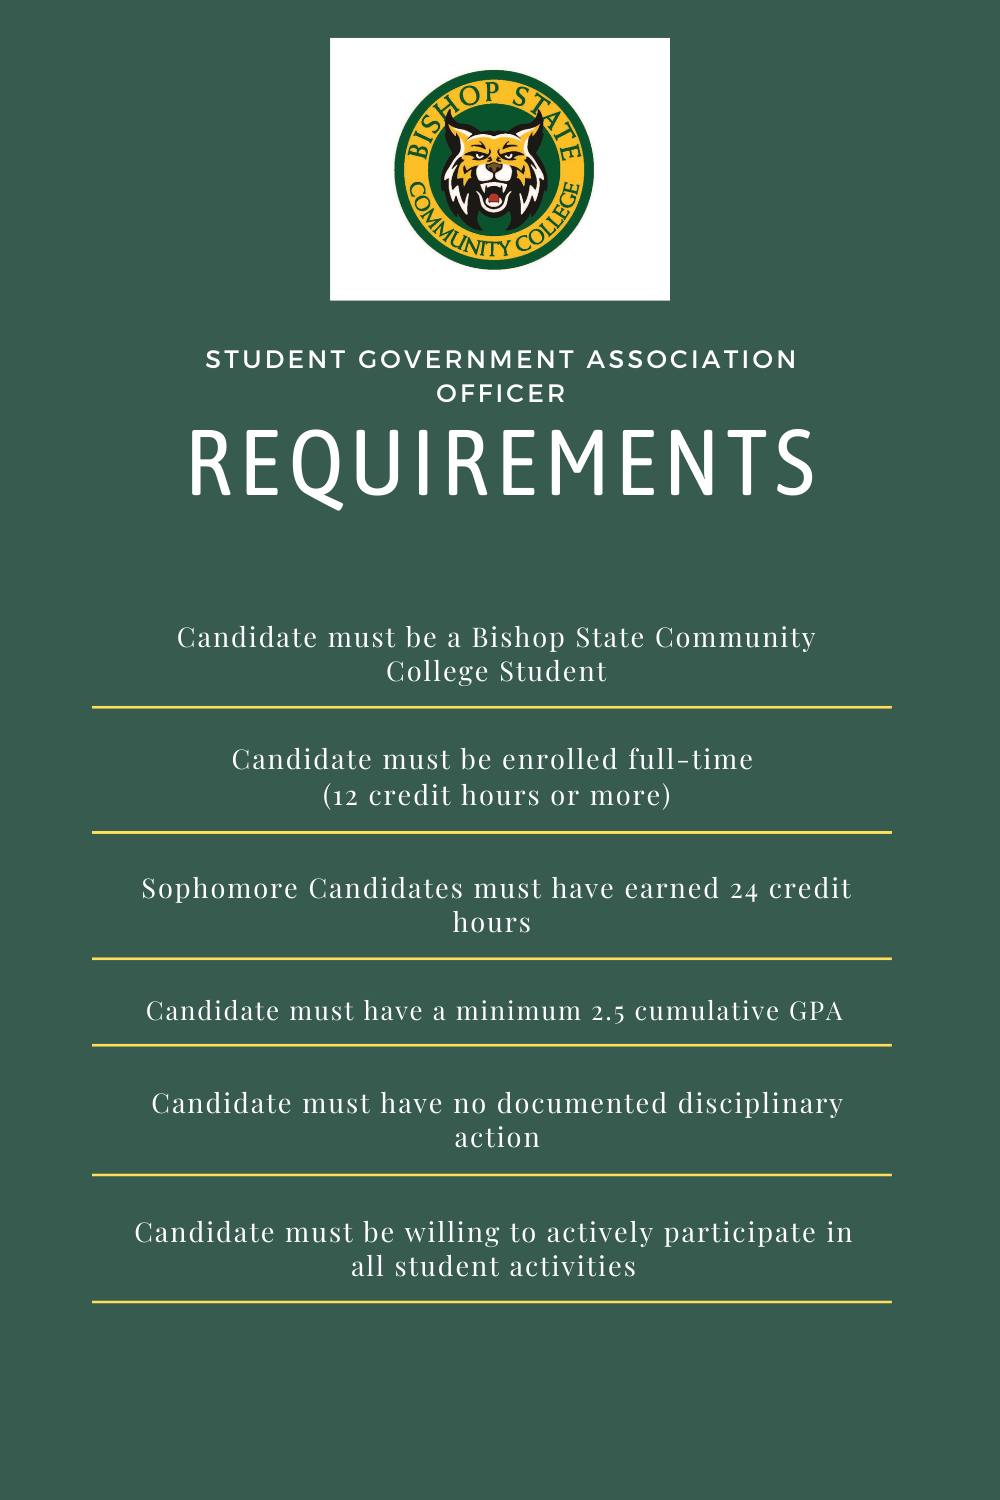 list of SGA Officer Requirements